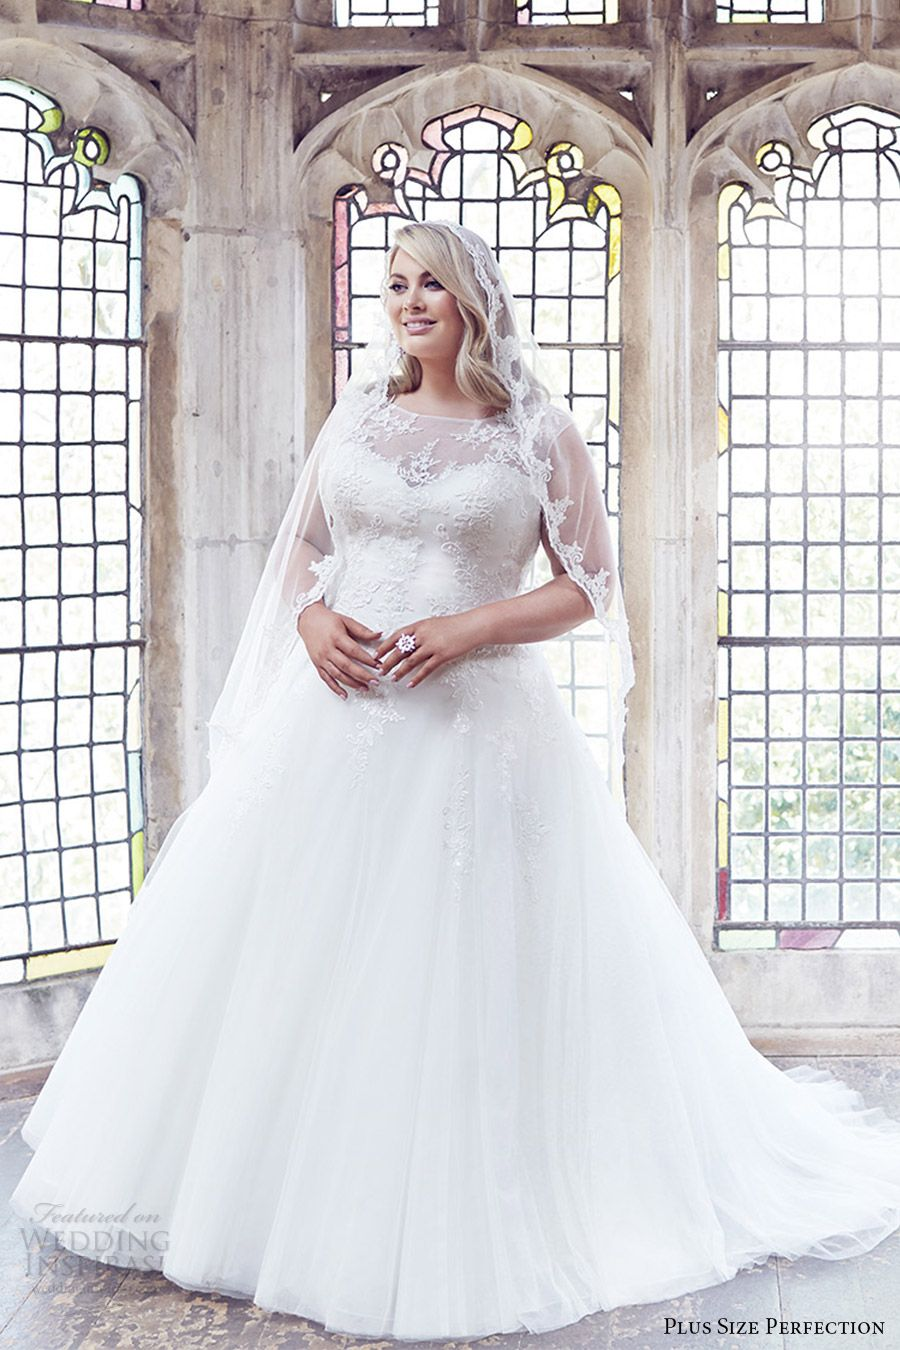 plus size perfection bridal 2016 cap sleeve sweetheart illusion jewel neck  a line ball gown wedding dress (anastasia) zv romantic elegant 6cc74ac1fe6a